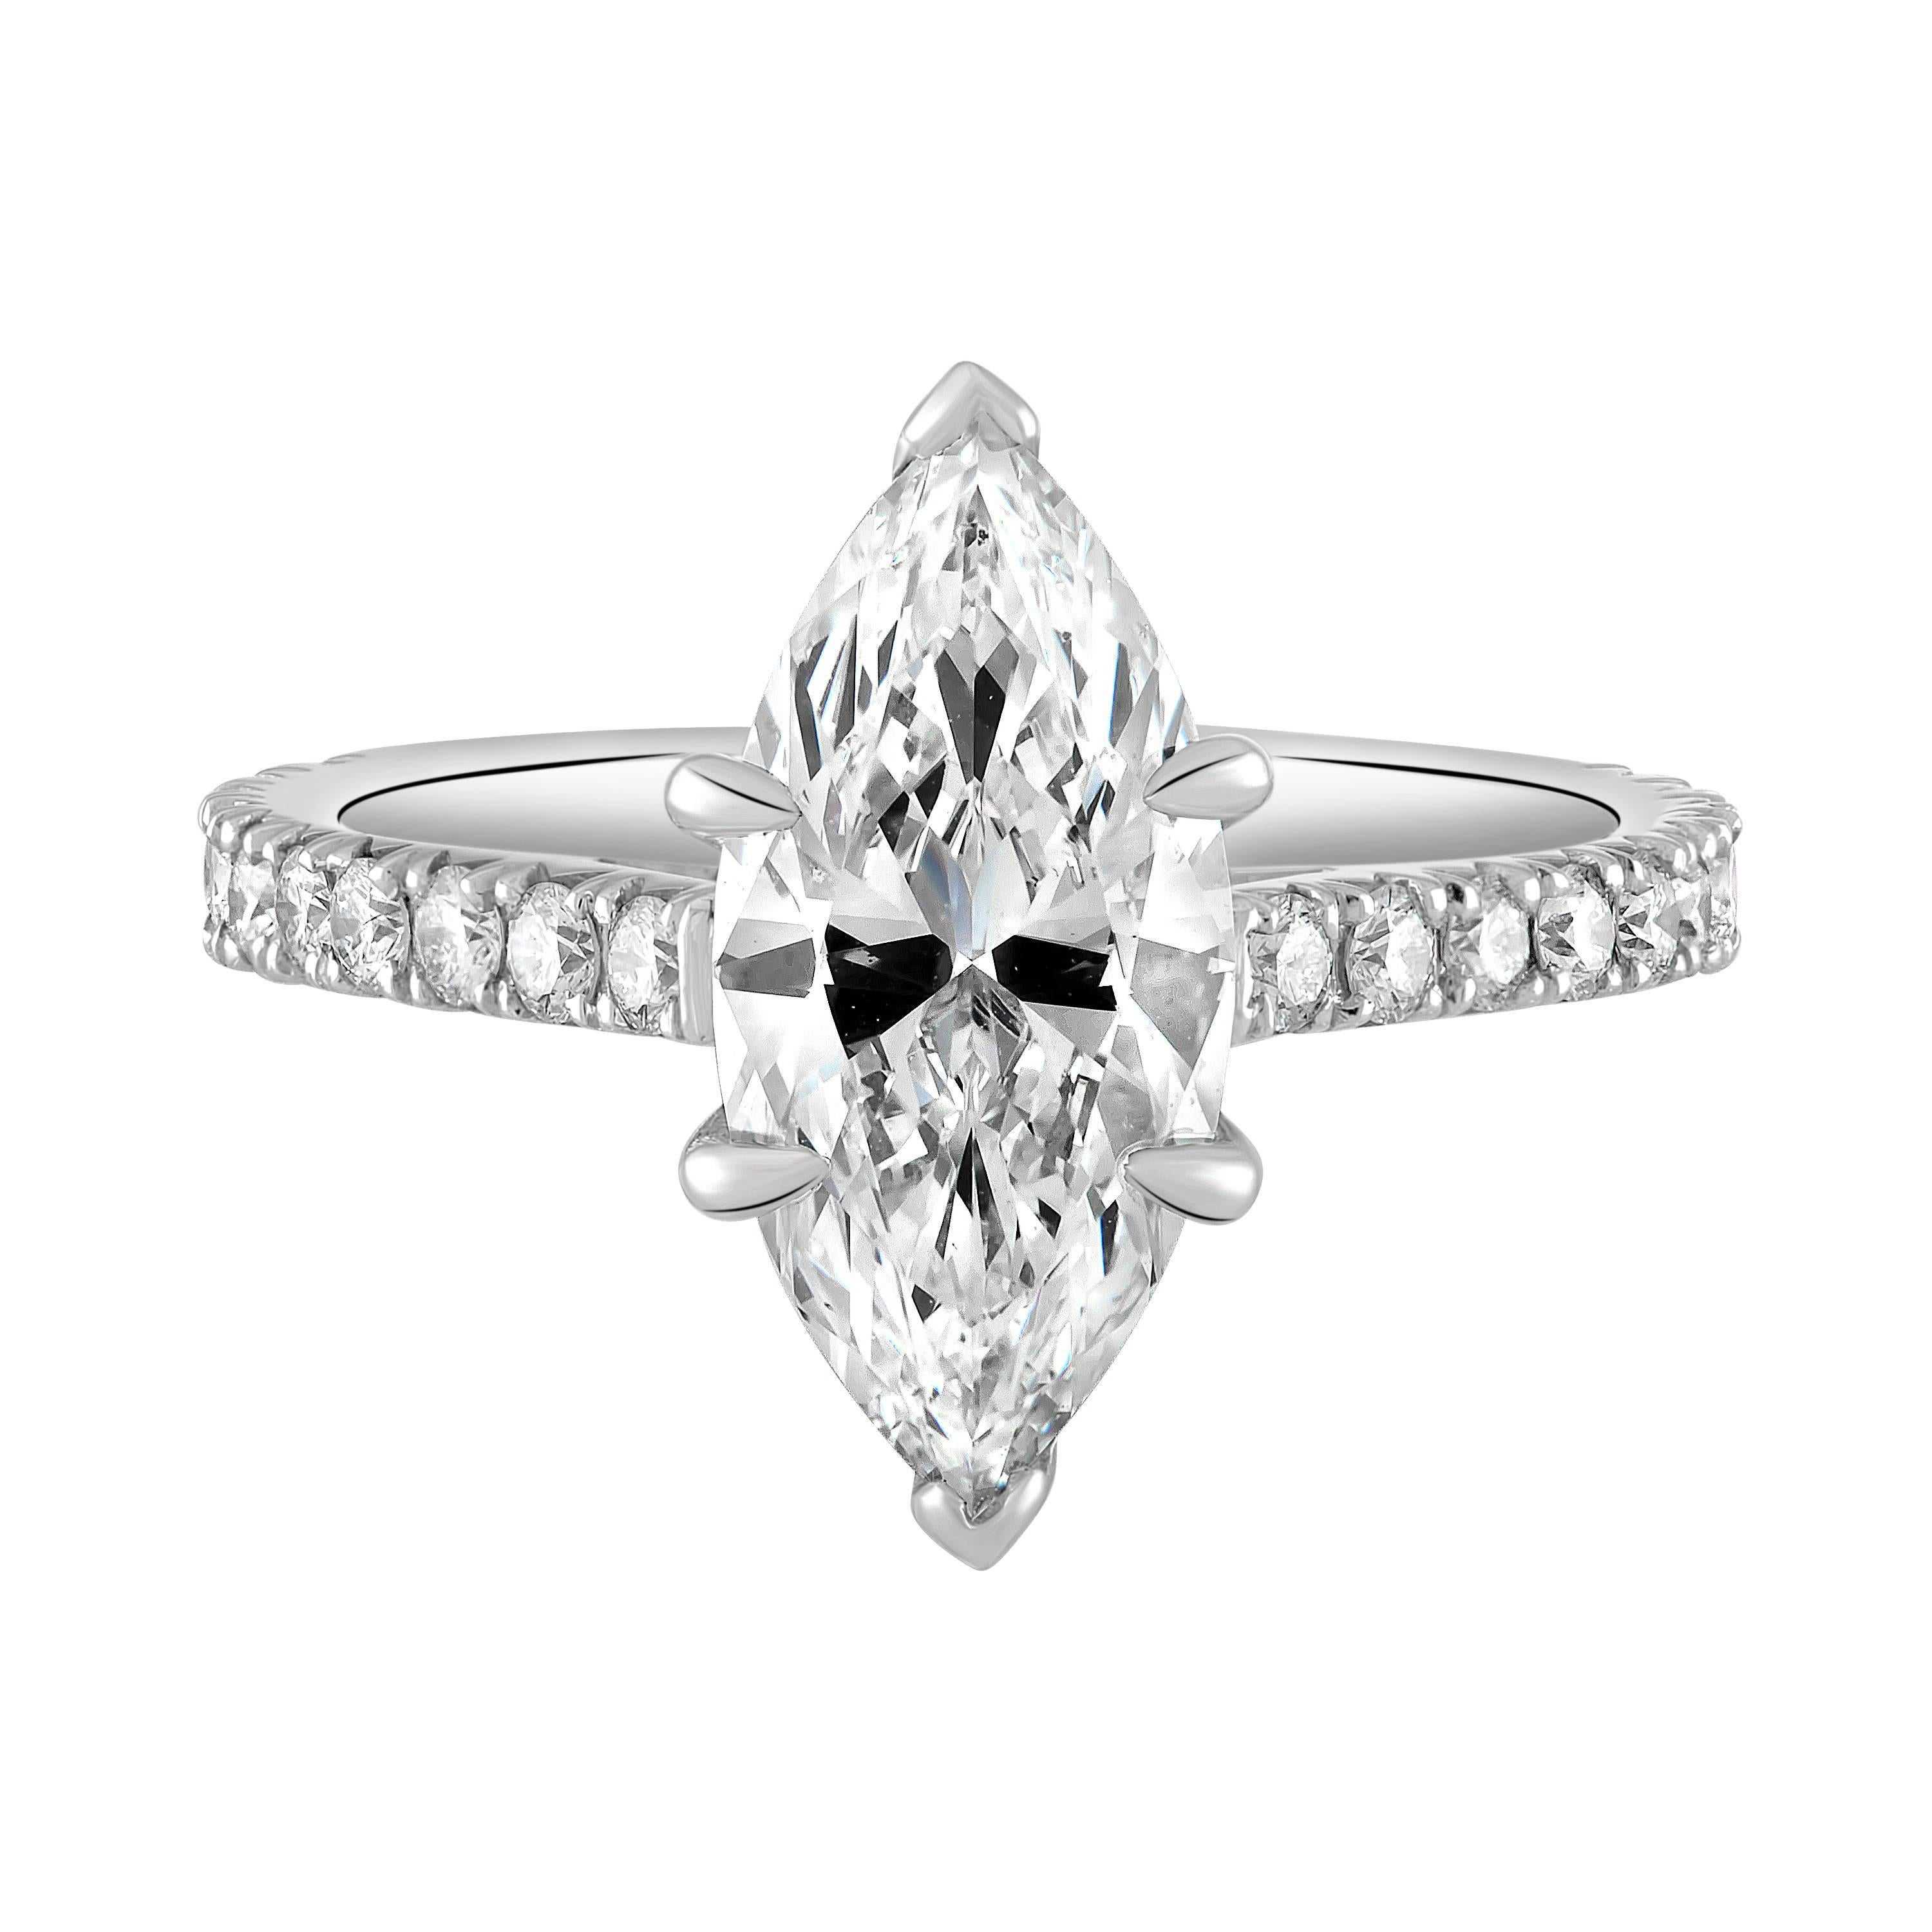 6f2bef7496337 Handmade Platinum and GIA Certified Marquise Diamond Engagement Ring